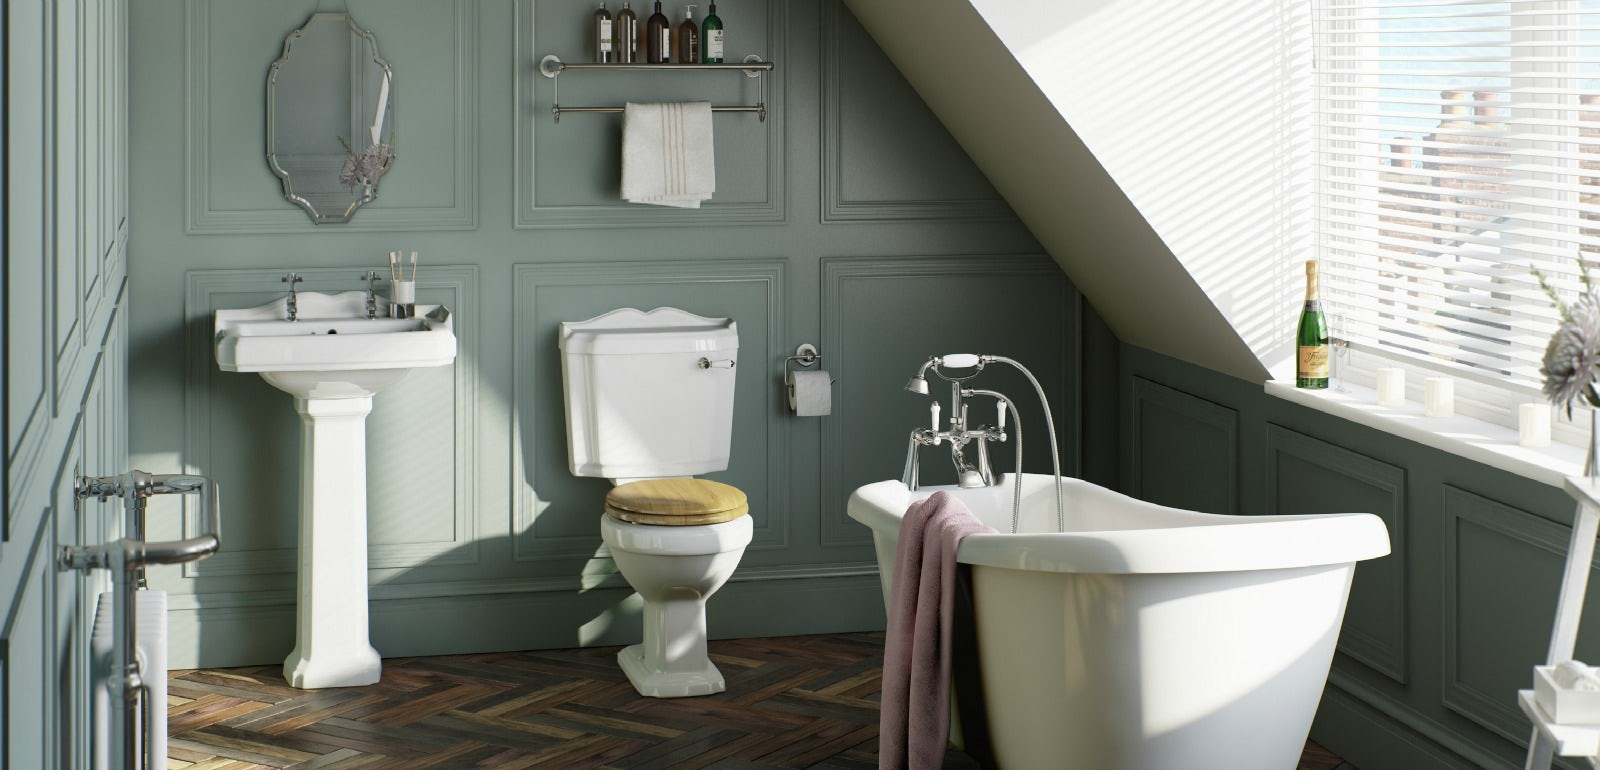 How a new bathroom can earn you thousands of pounds